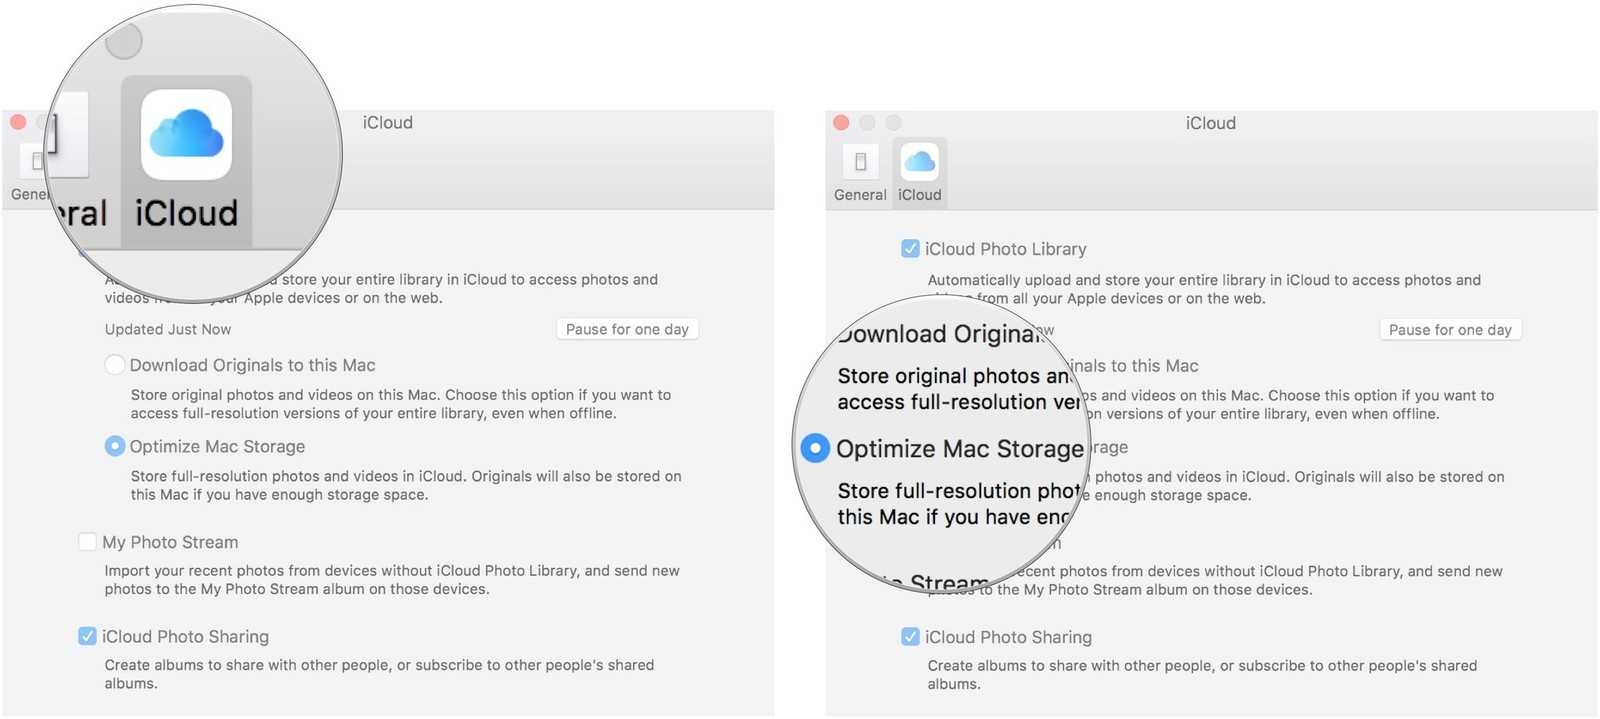 How to see my photos in icloud photo library